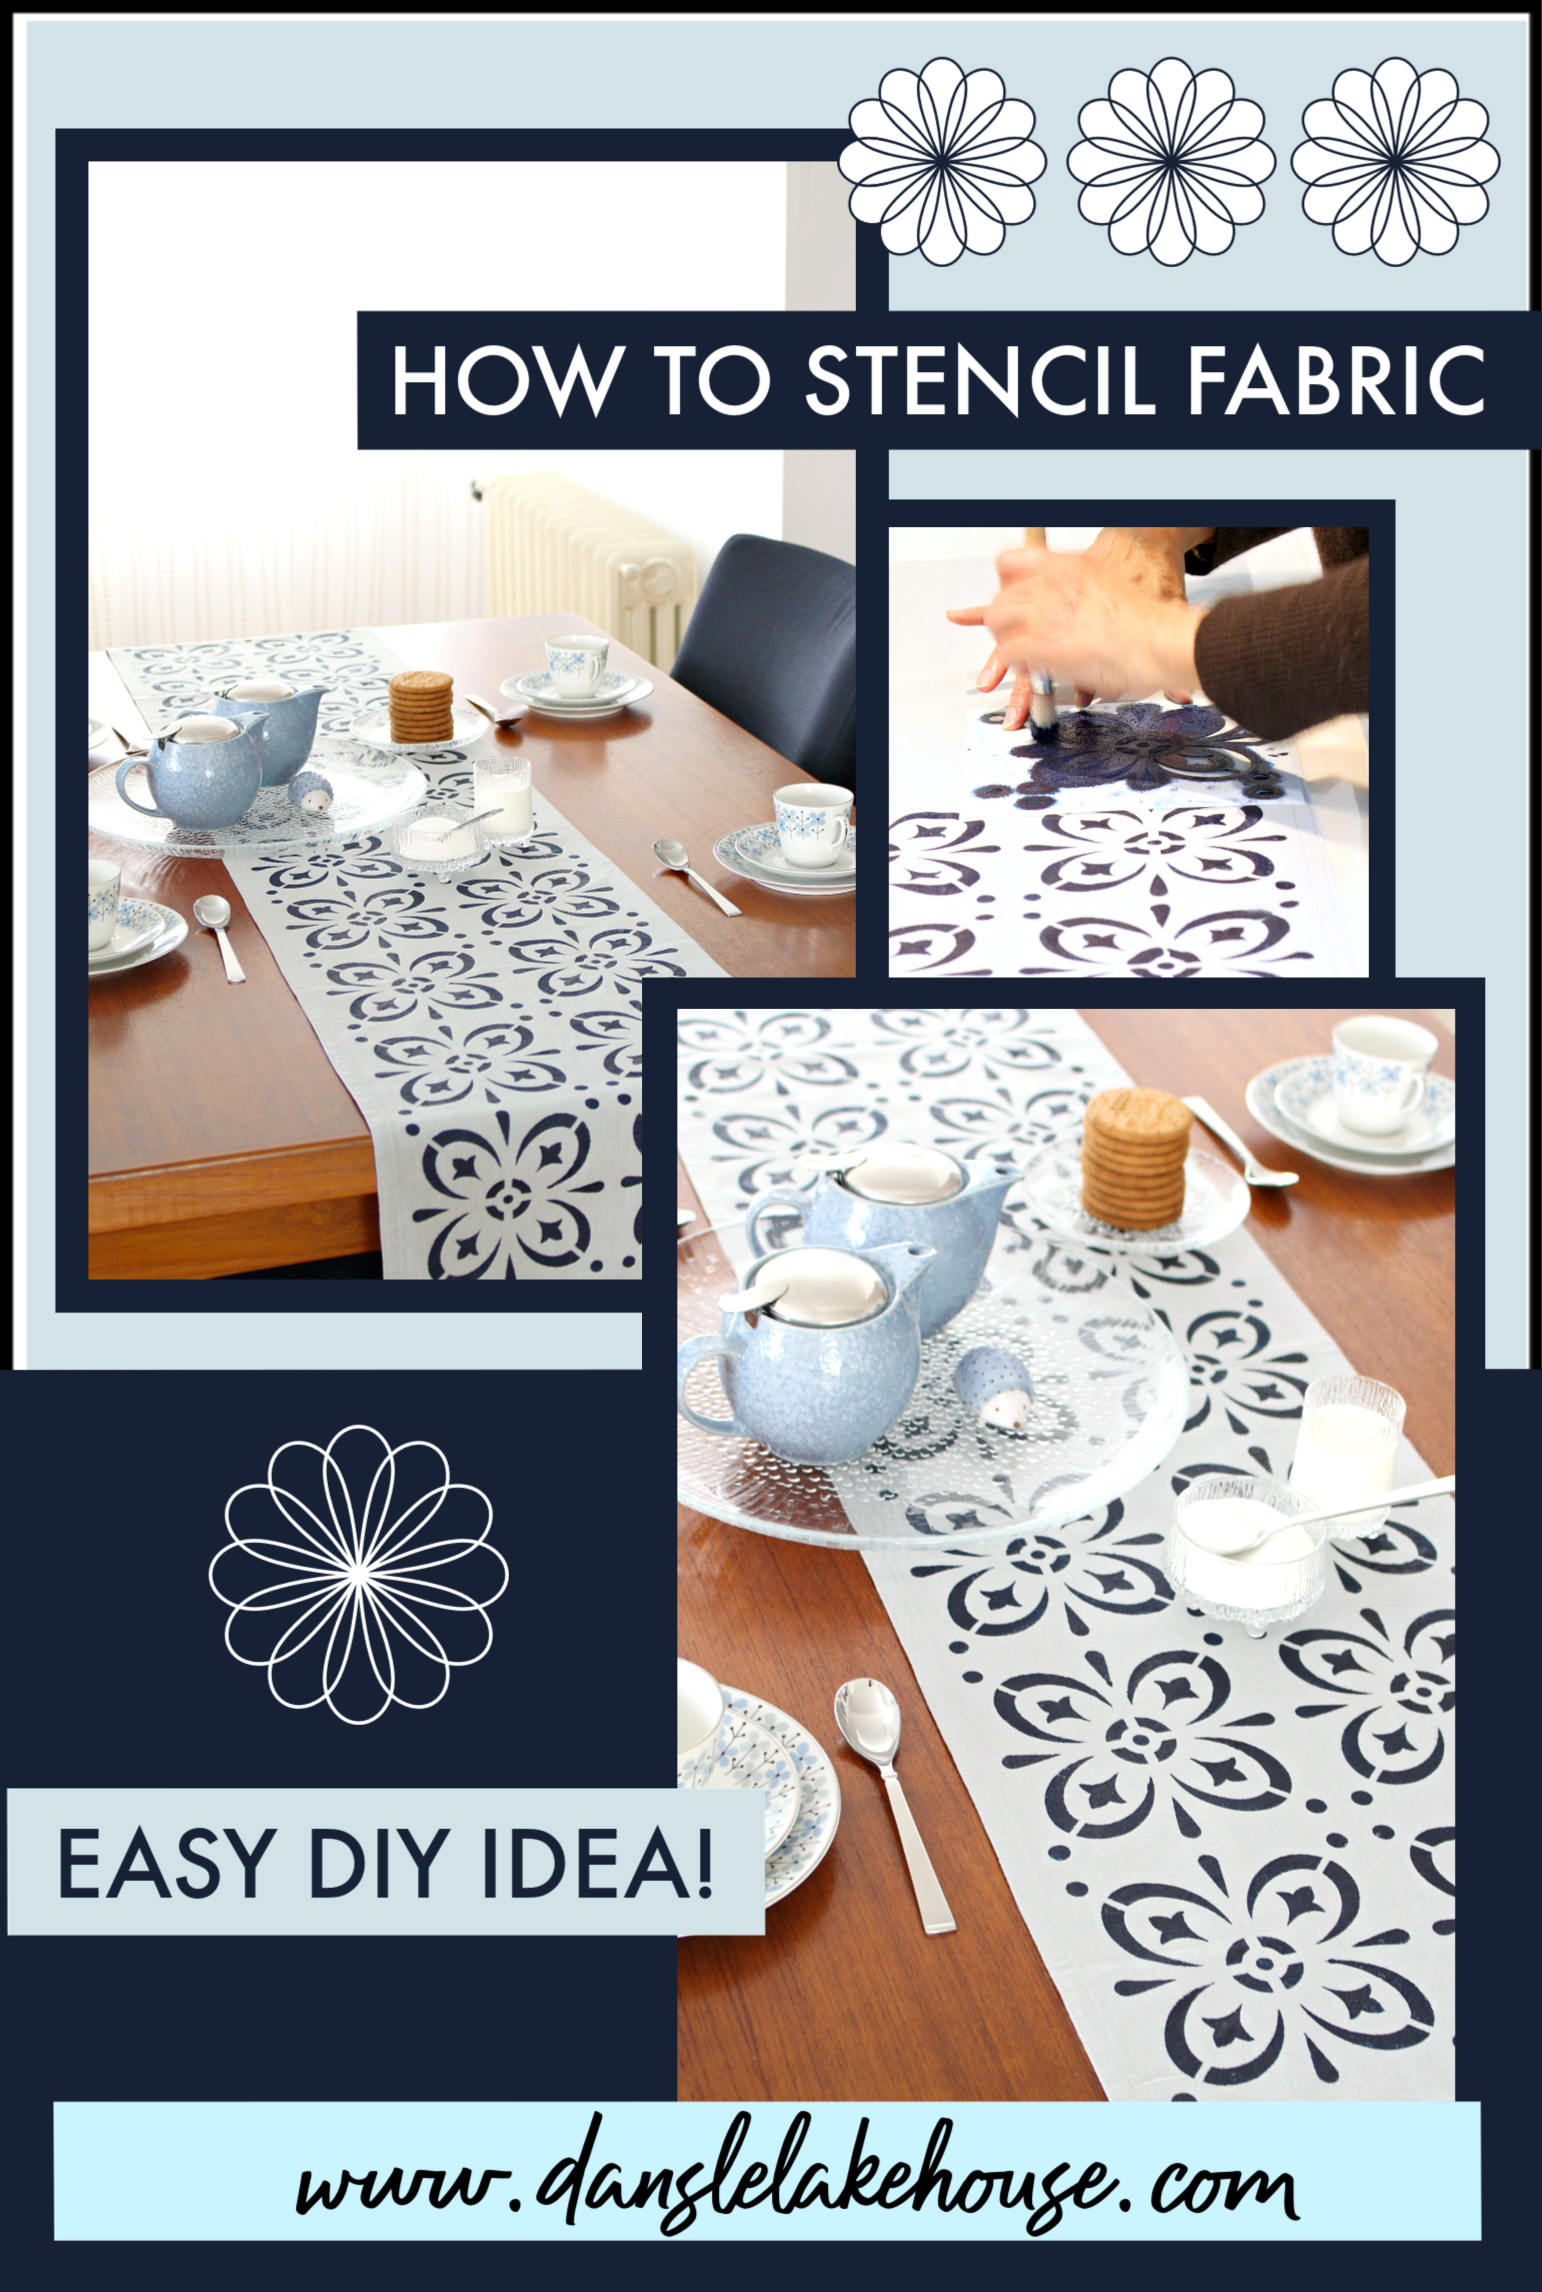 How To Stencil Fabric  Easy Diy Project Turn Your